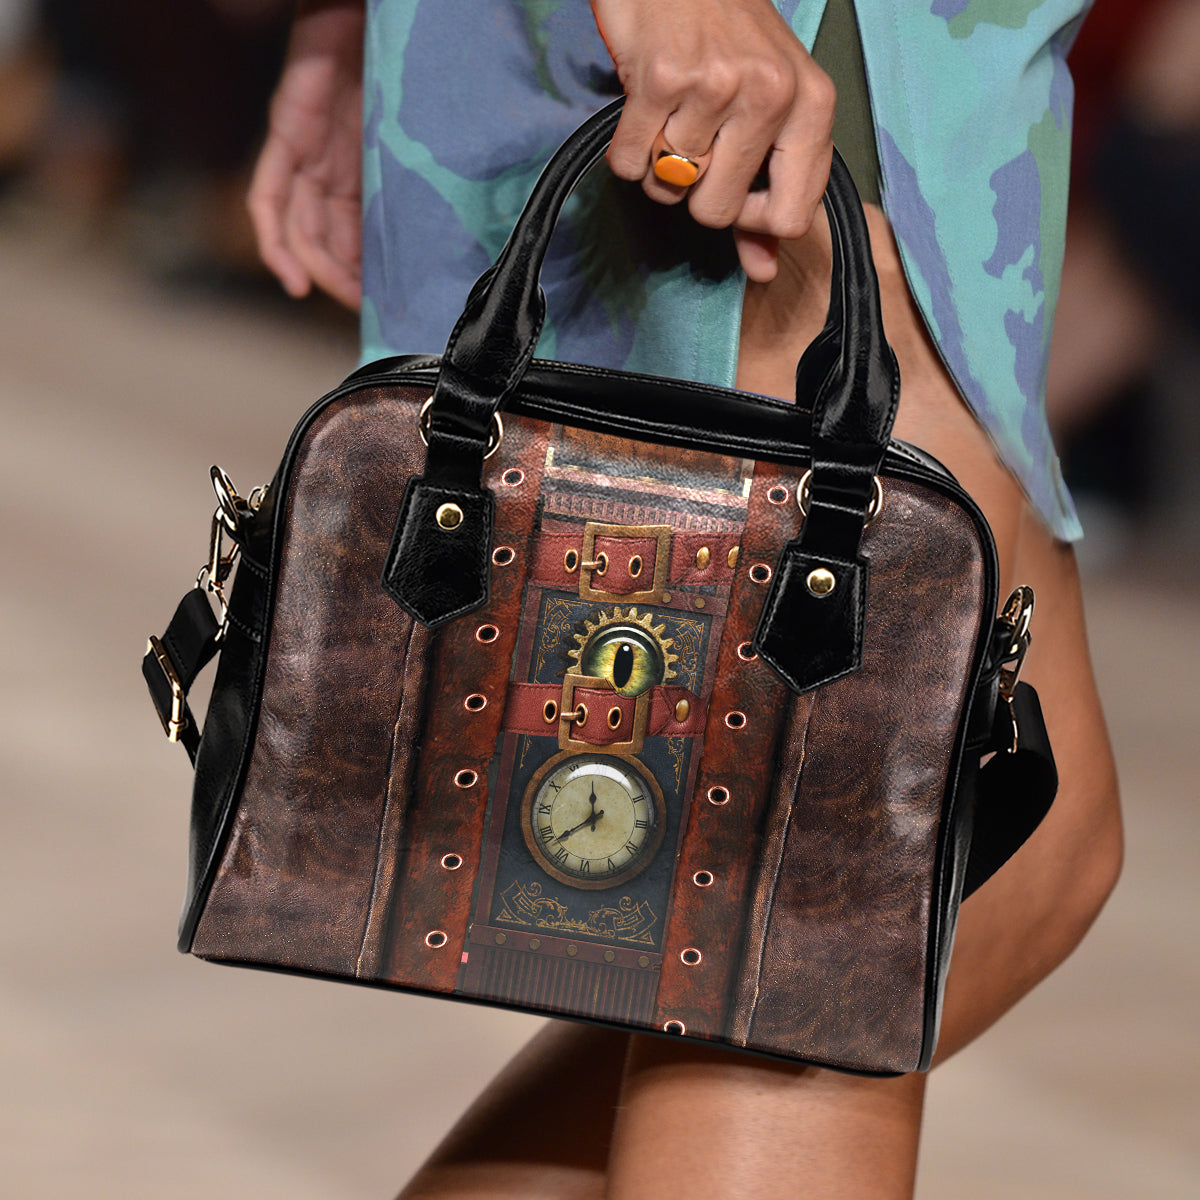 Clock & Eye Steampunk Handbag